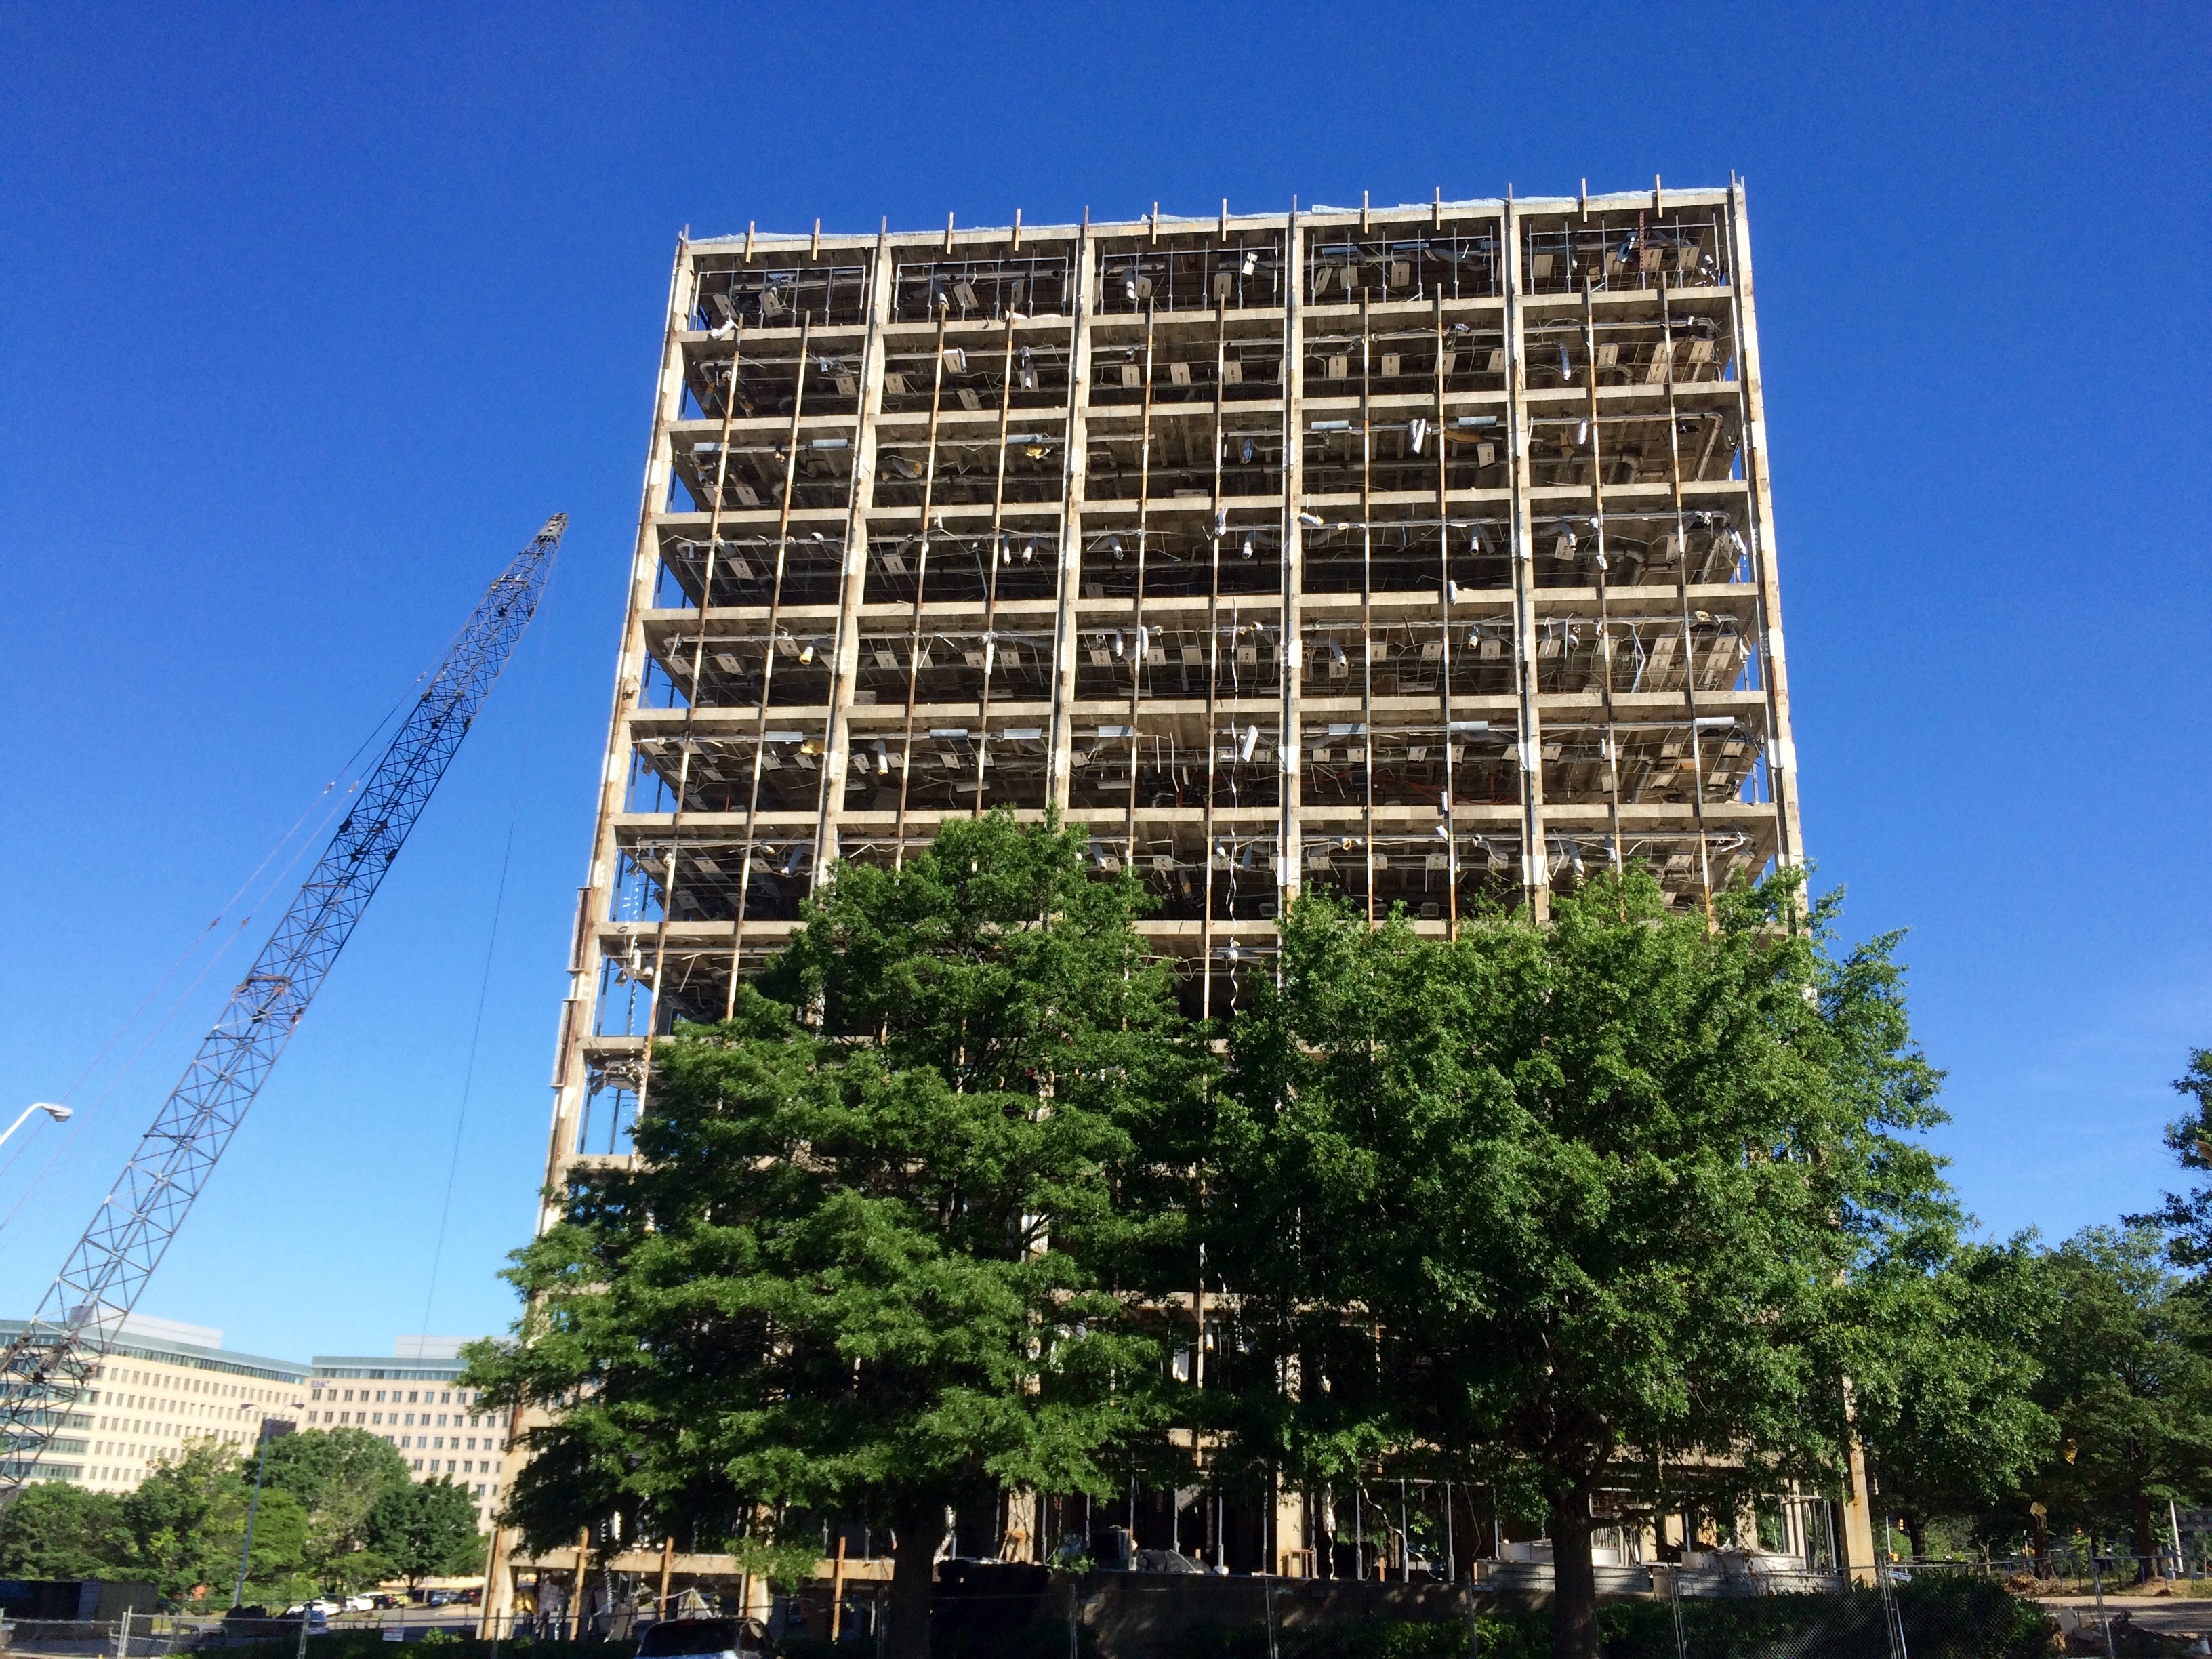 Wrecking ball coming to 13-story building in Tysons